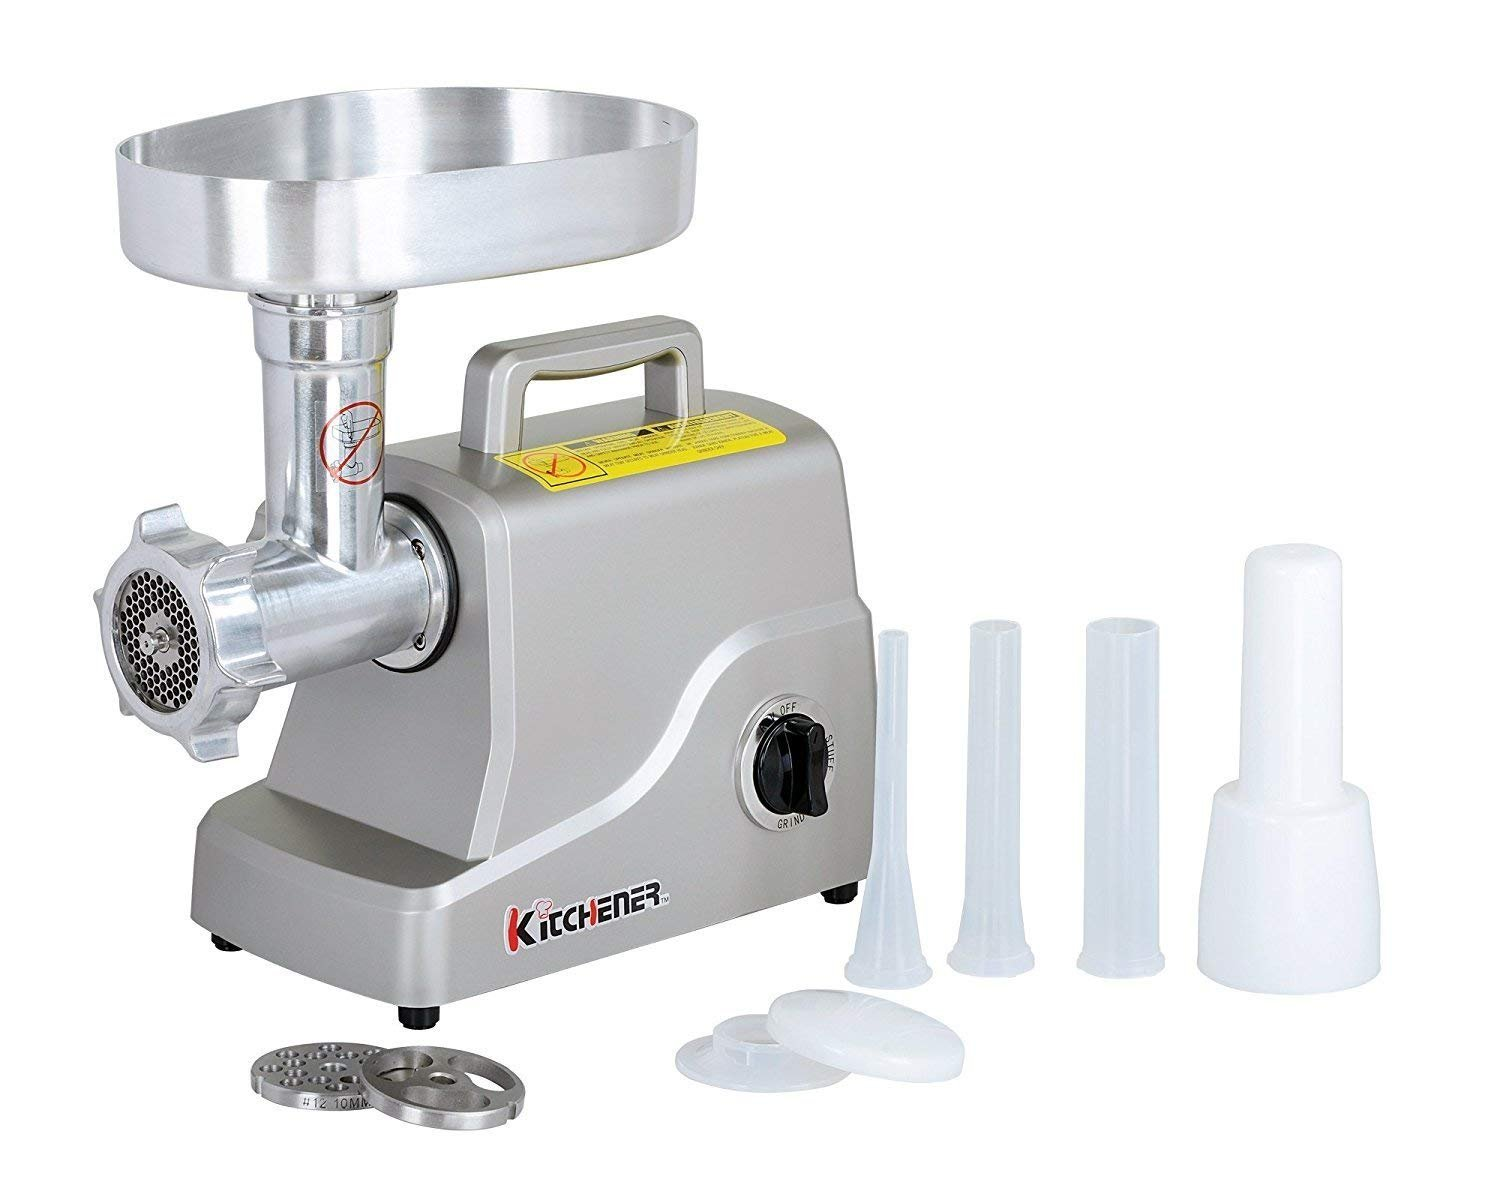 Kitchener Heavy Duty Electric Meat Grinder 2/3 HP (500W), 3-speed with Stainless Steel Cutting Blade, 2 Stainless Steel Grinding Plates and Stainless Steel Stuffing Plate GCM 52021250R